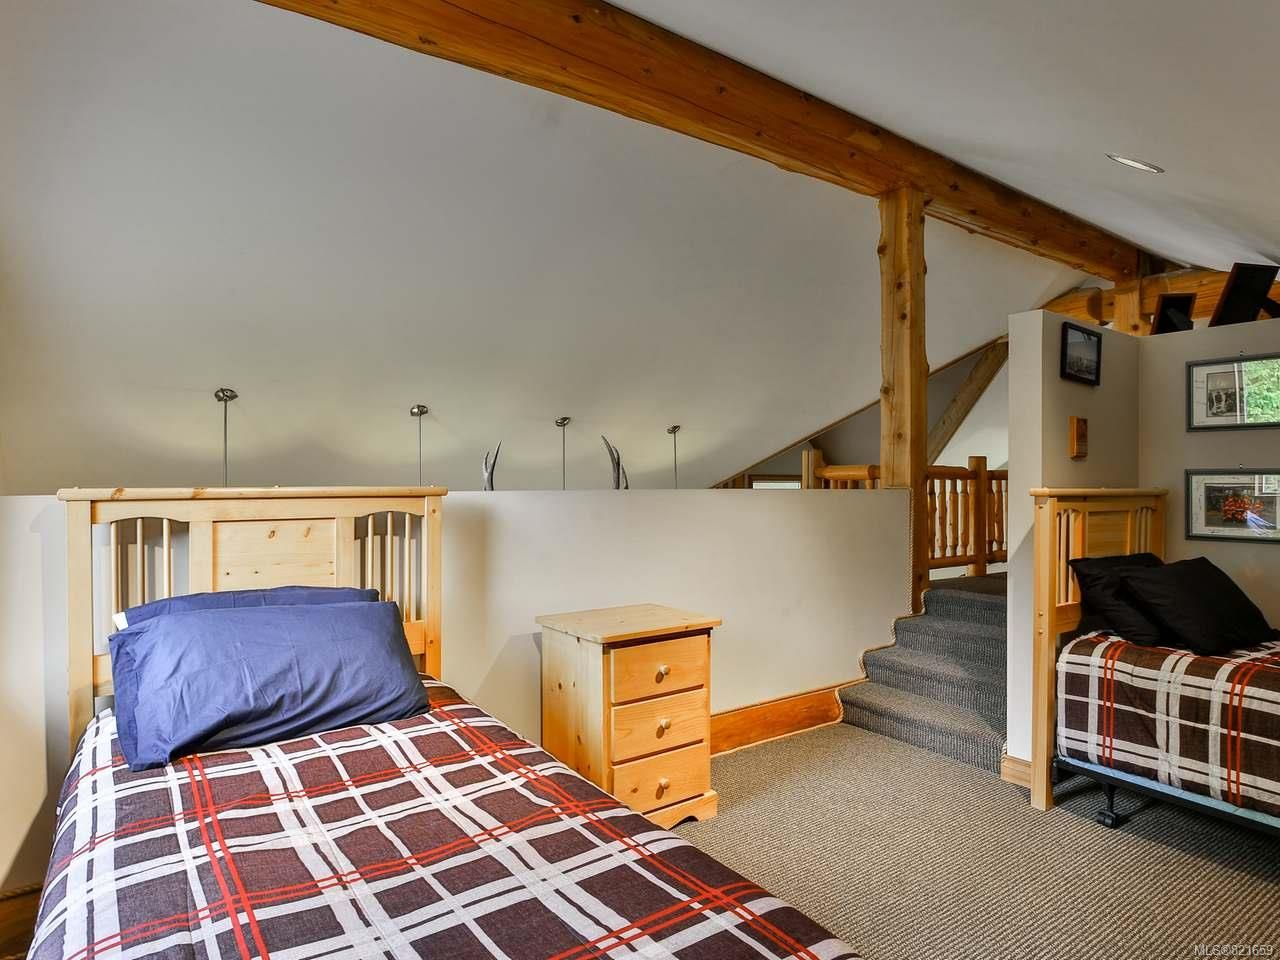 Photo 31: Photos: 1049 Helen Rd in UCLUELET: PA Ucluelet House for sale (Port Alberni)  : MLS®# 821659